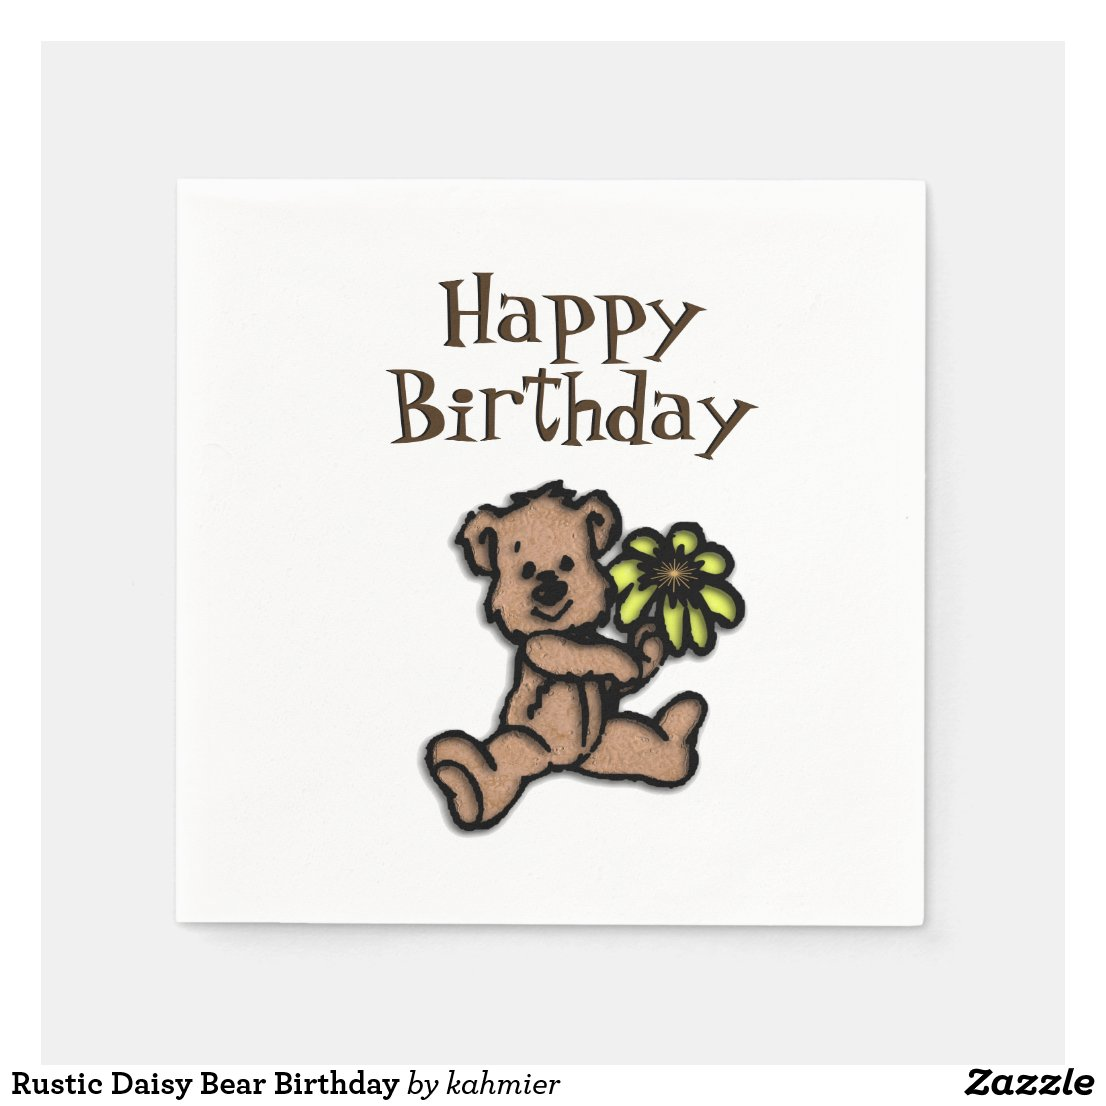 Rustic Daisy Bear Birthday Napkin